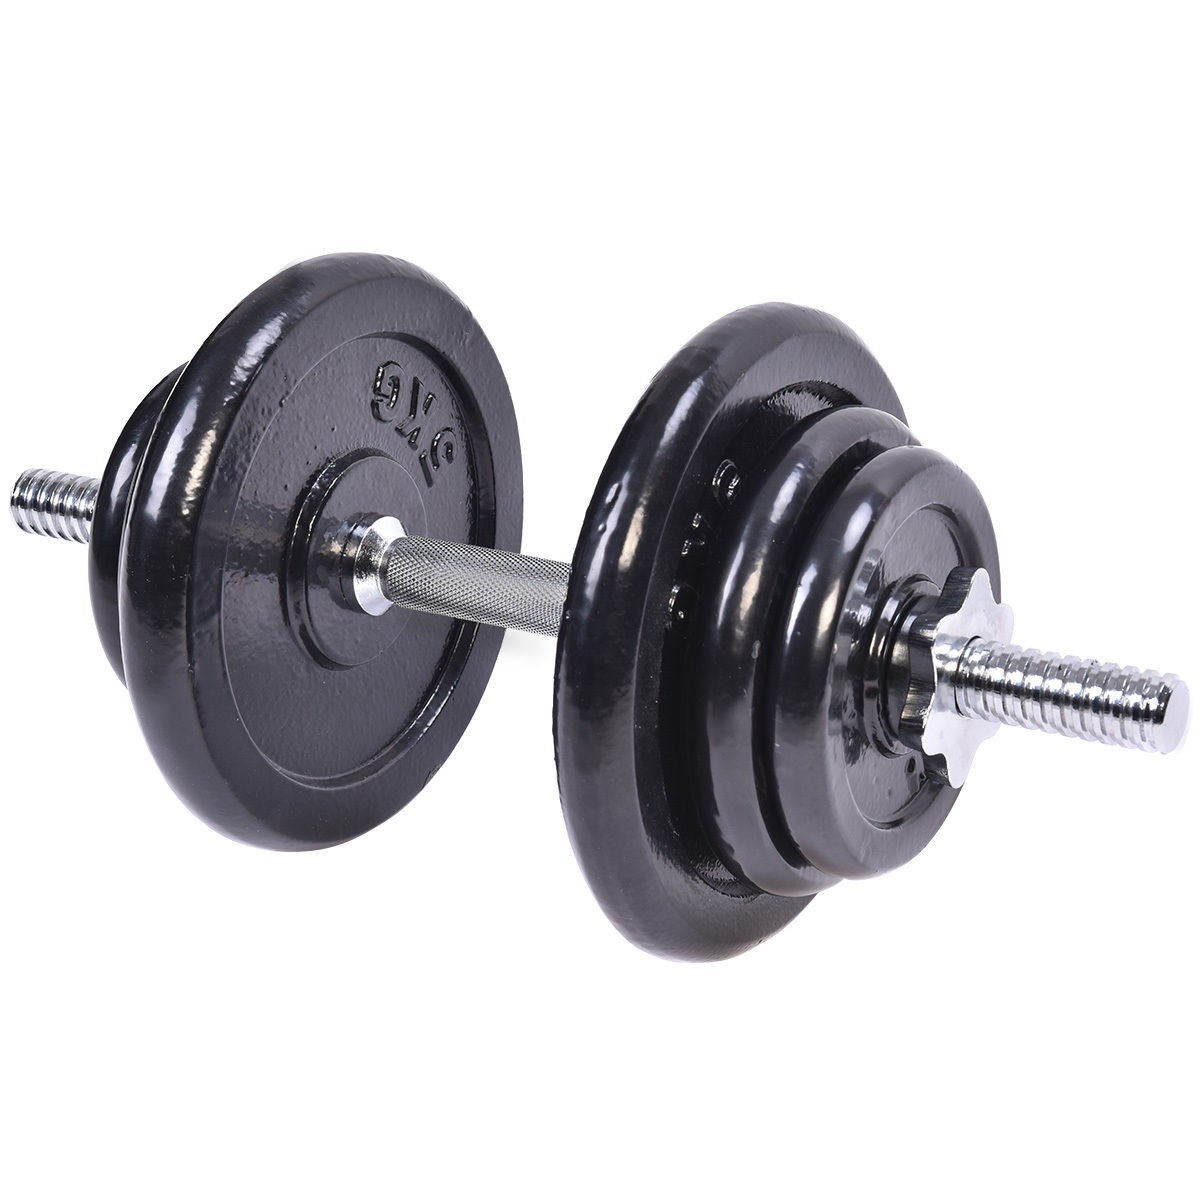 Adjustable Workout Weights: Adjustable 44 LB Weight Dumbbell Set Cap Gym Barbell Body